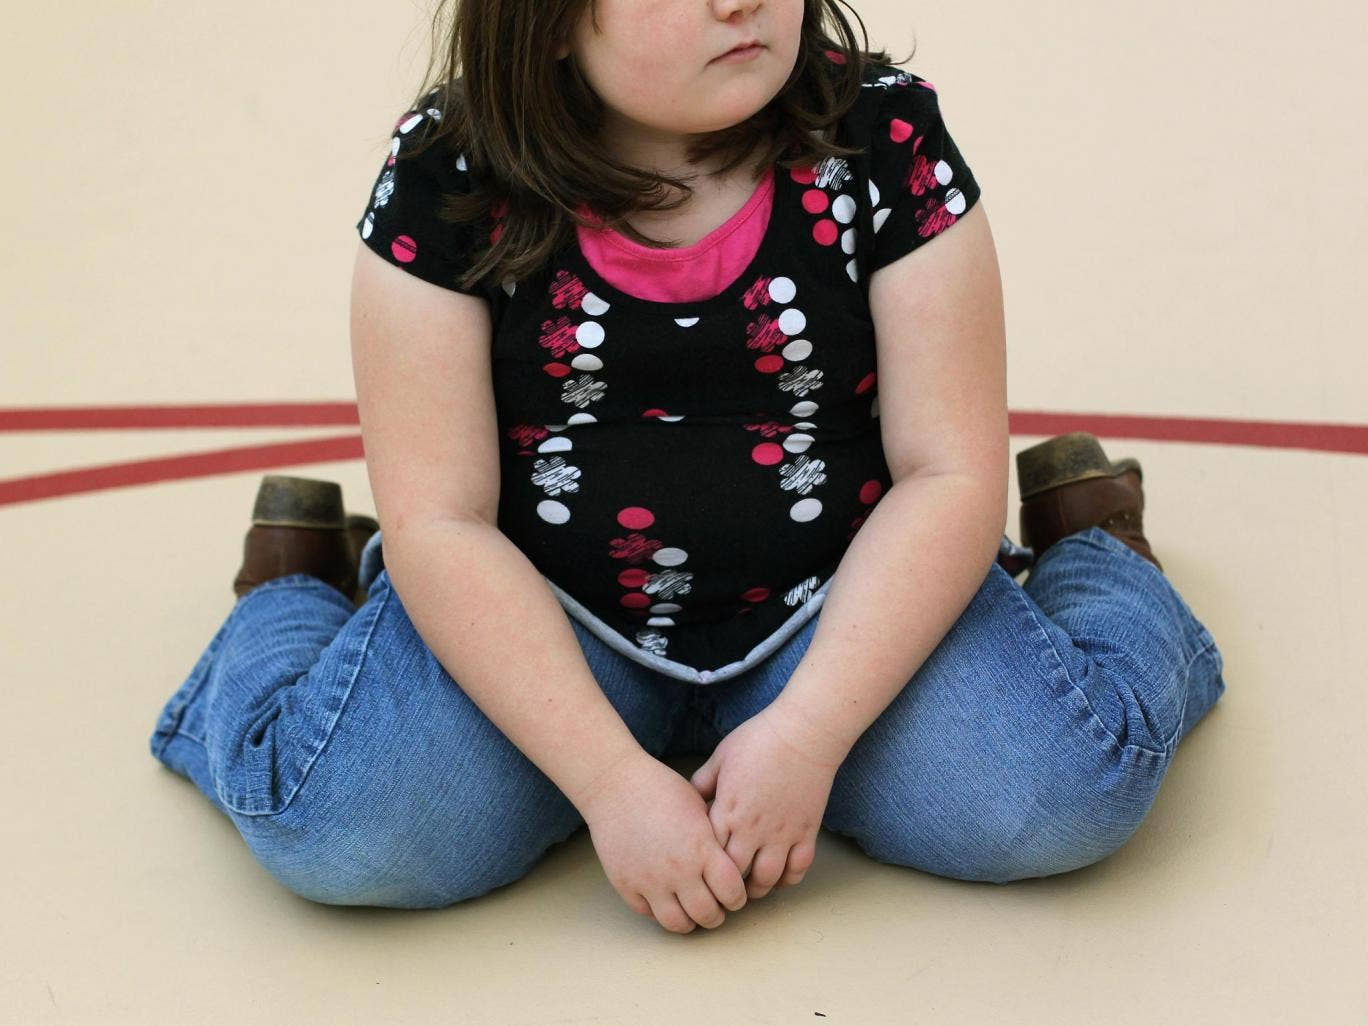 Over the last three years, 183 children aged under 12 were found to weigh more than 16 stone